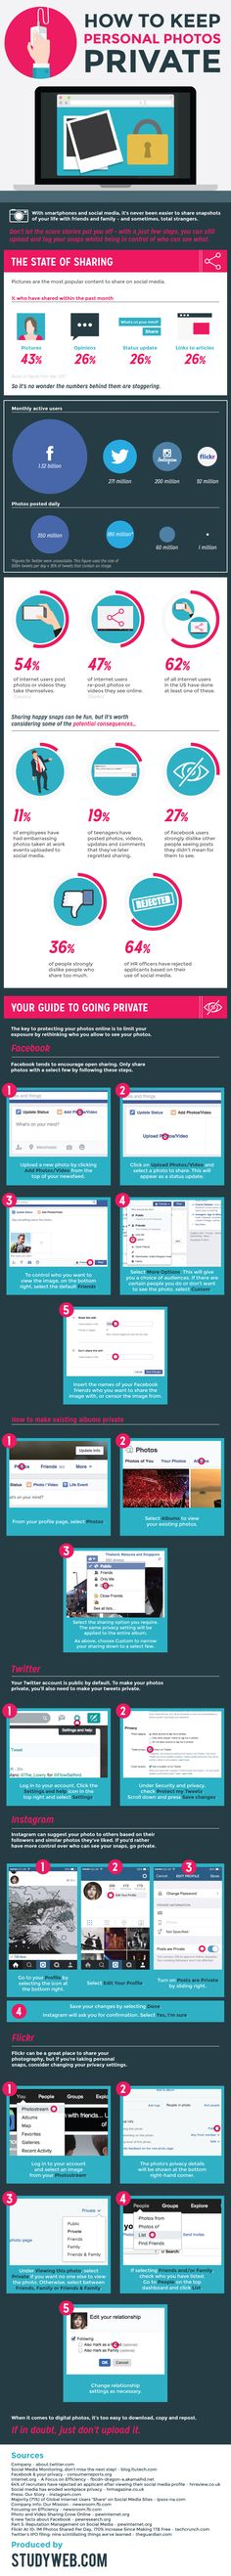 How to Change Photo Privacy Settings on Facebook, Twitter and Other Popular Social Media Sites - #Infographic #instagram